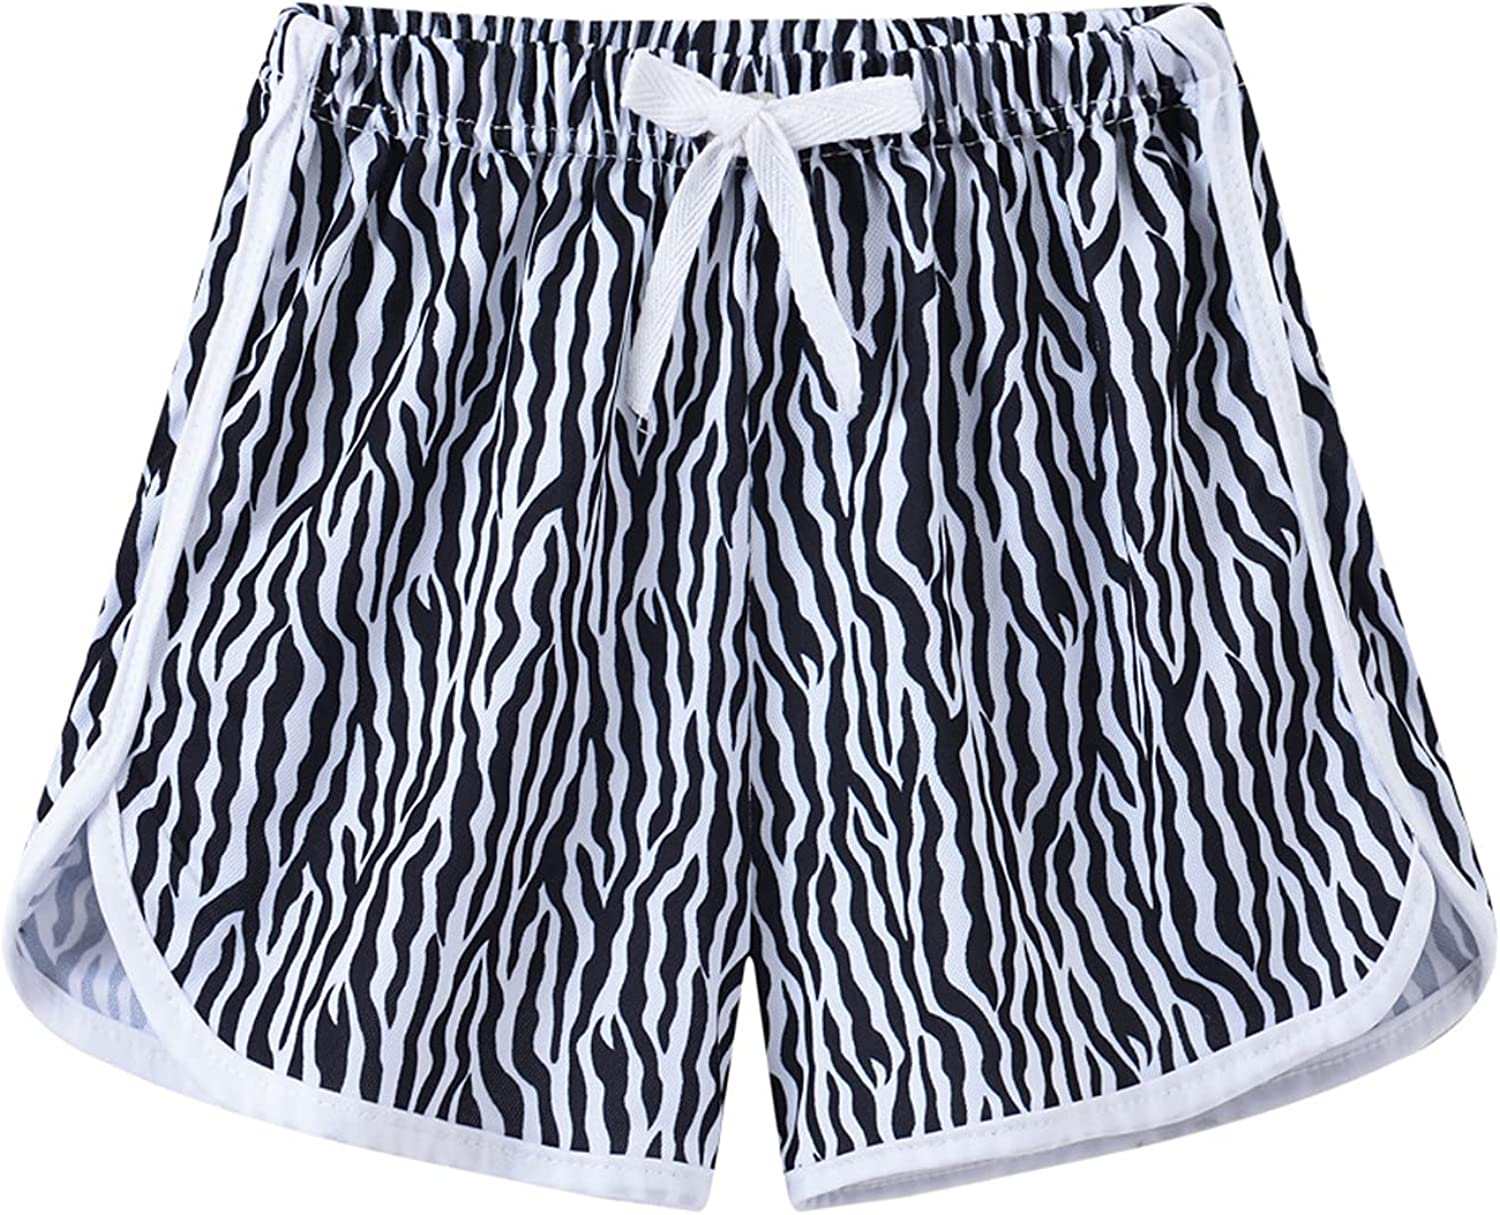 Allesgut Girls' Athletic Shorts Workout Shorts Assorted Pattern for 3-8 Years